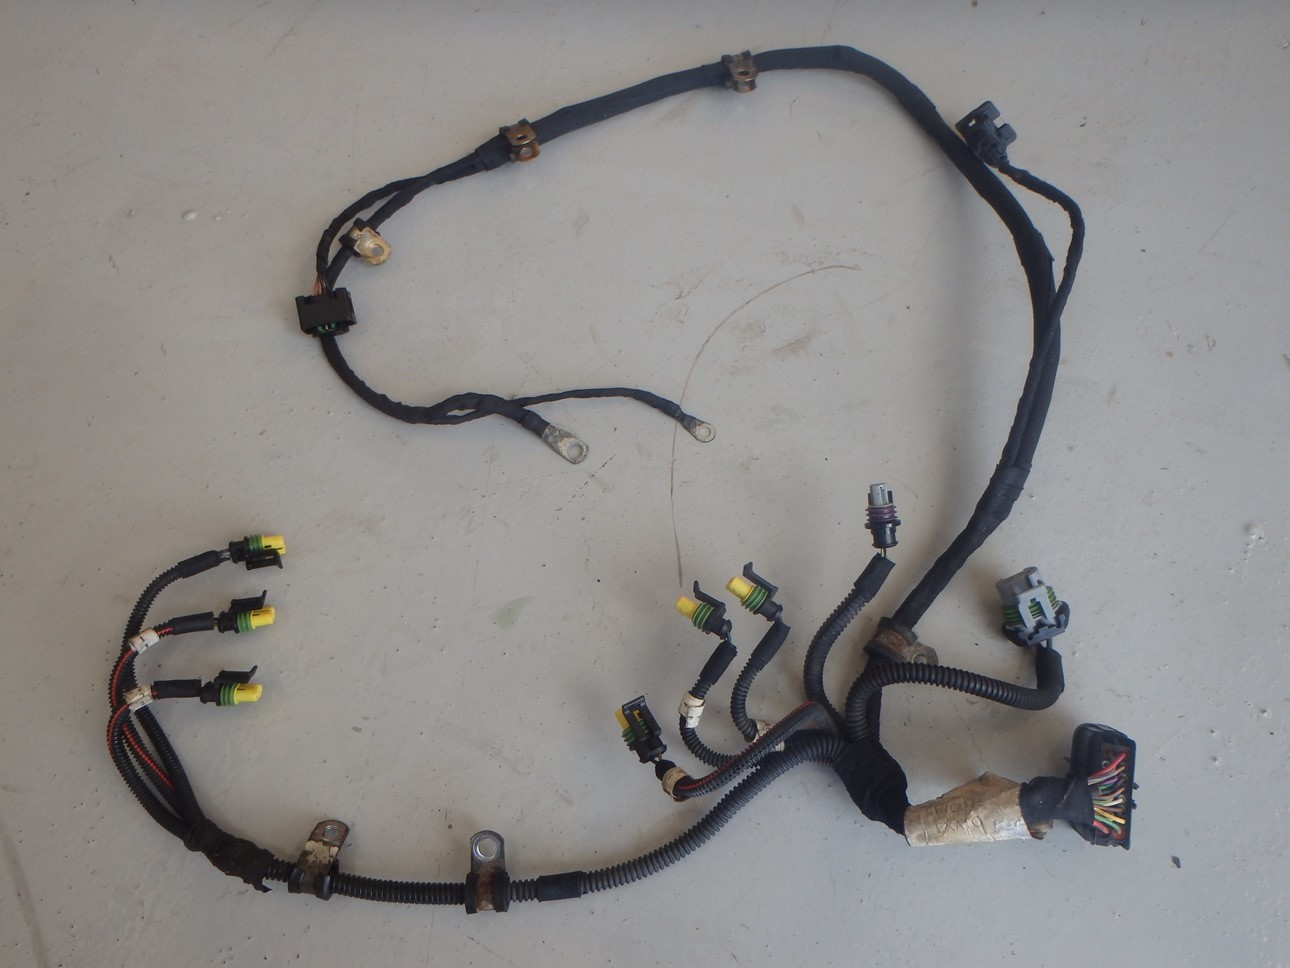 hight resolution of maserati coupe 4200 gt m138 f1 transmission wiring loom harness 184916 j086